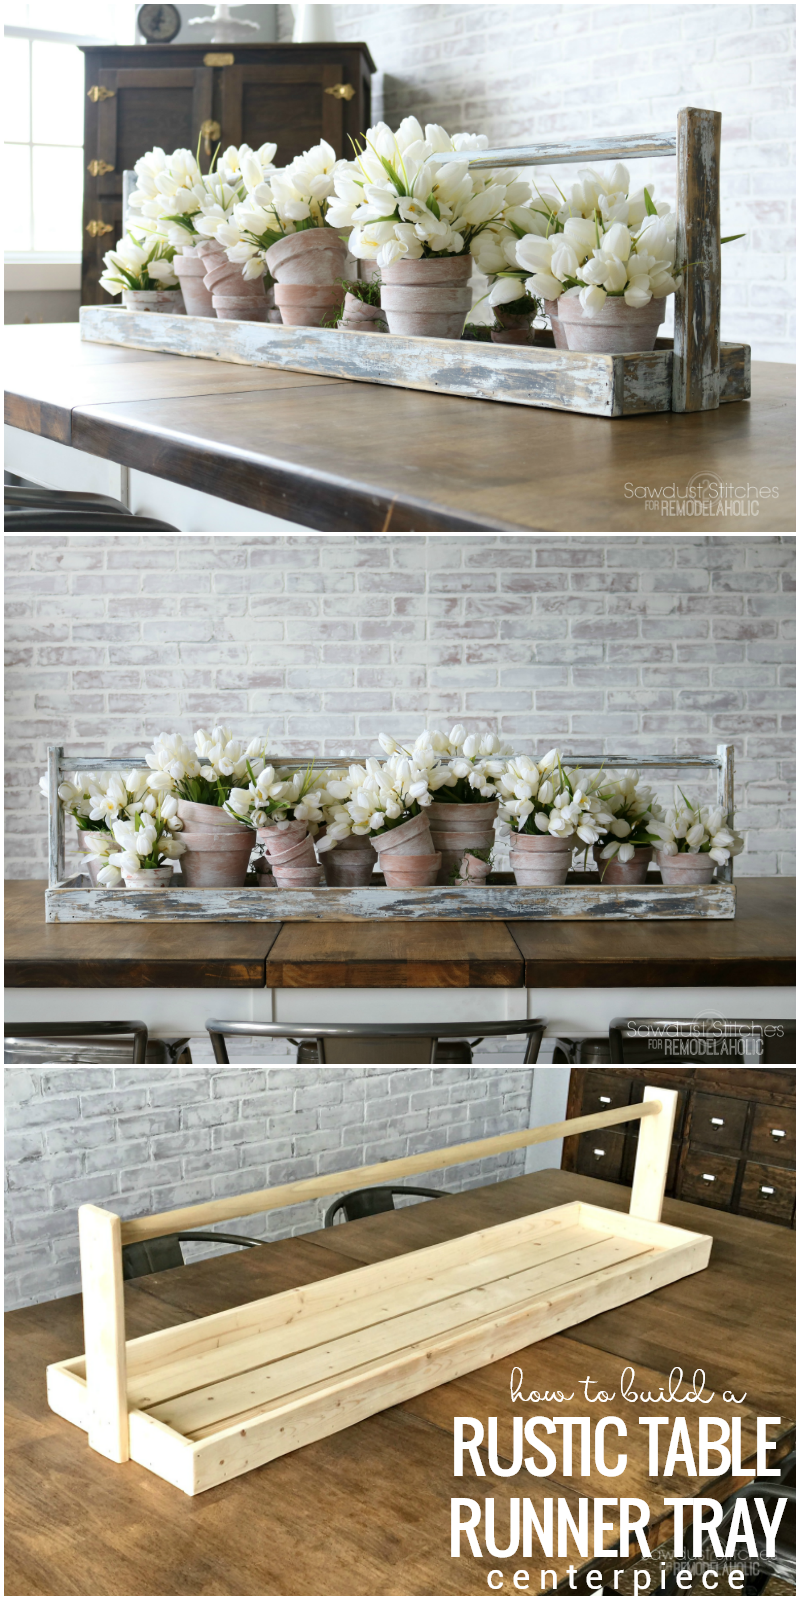 How To Build A Rustic Table Runner Tray Centerpiece